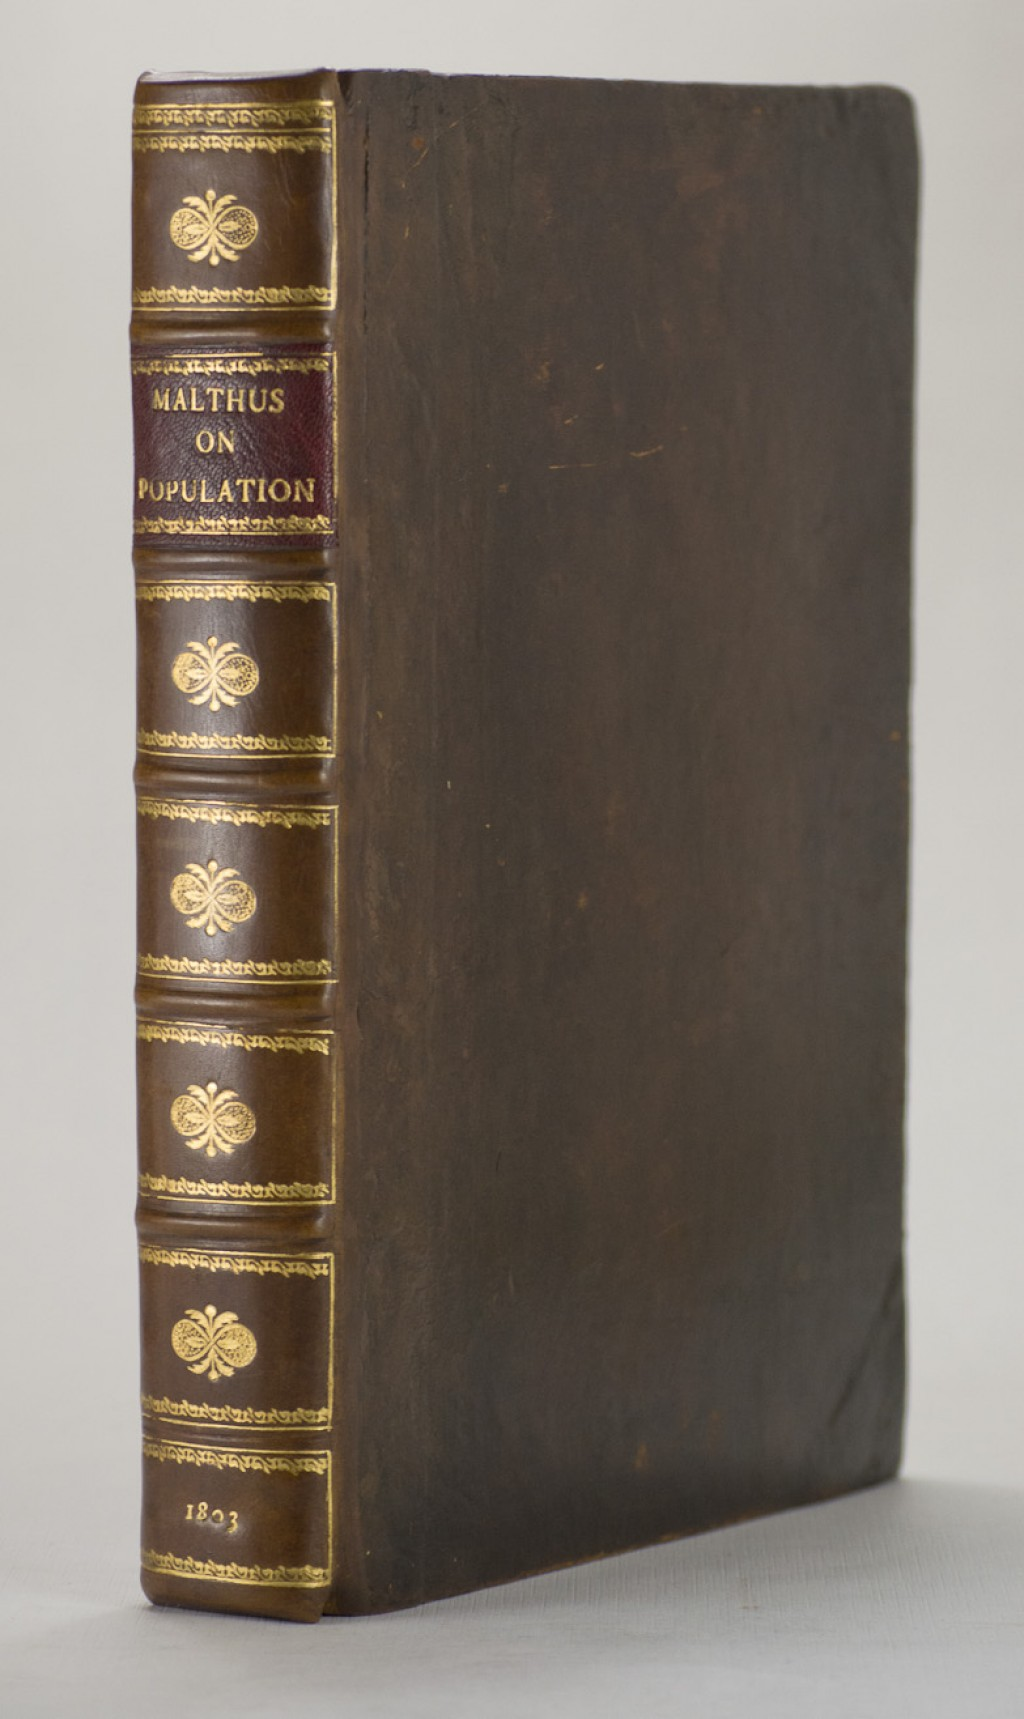 012 Thomas Malthus An Essay On The Principle Of Population 65276 1 Marvelous Summary Analysis Argued In His (1798) That Large